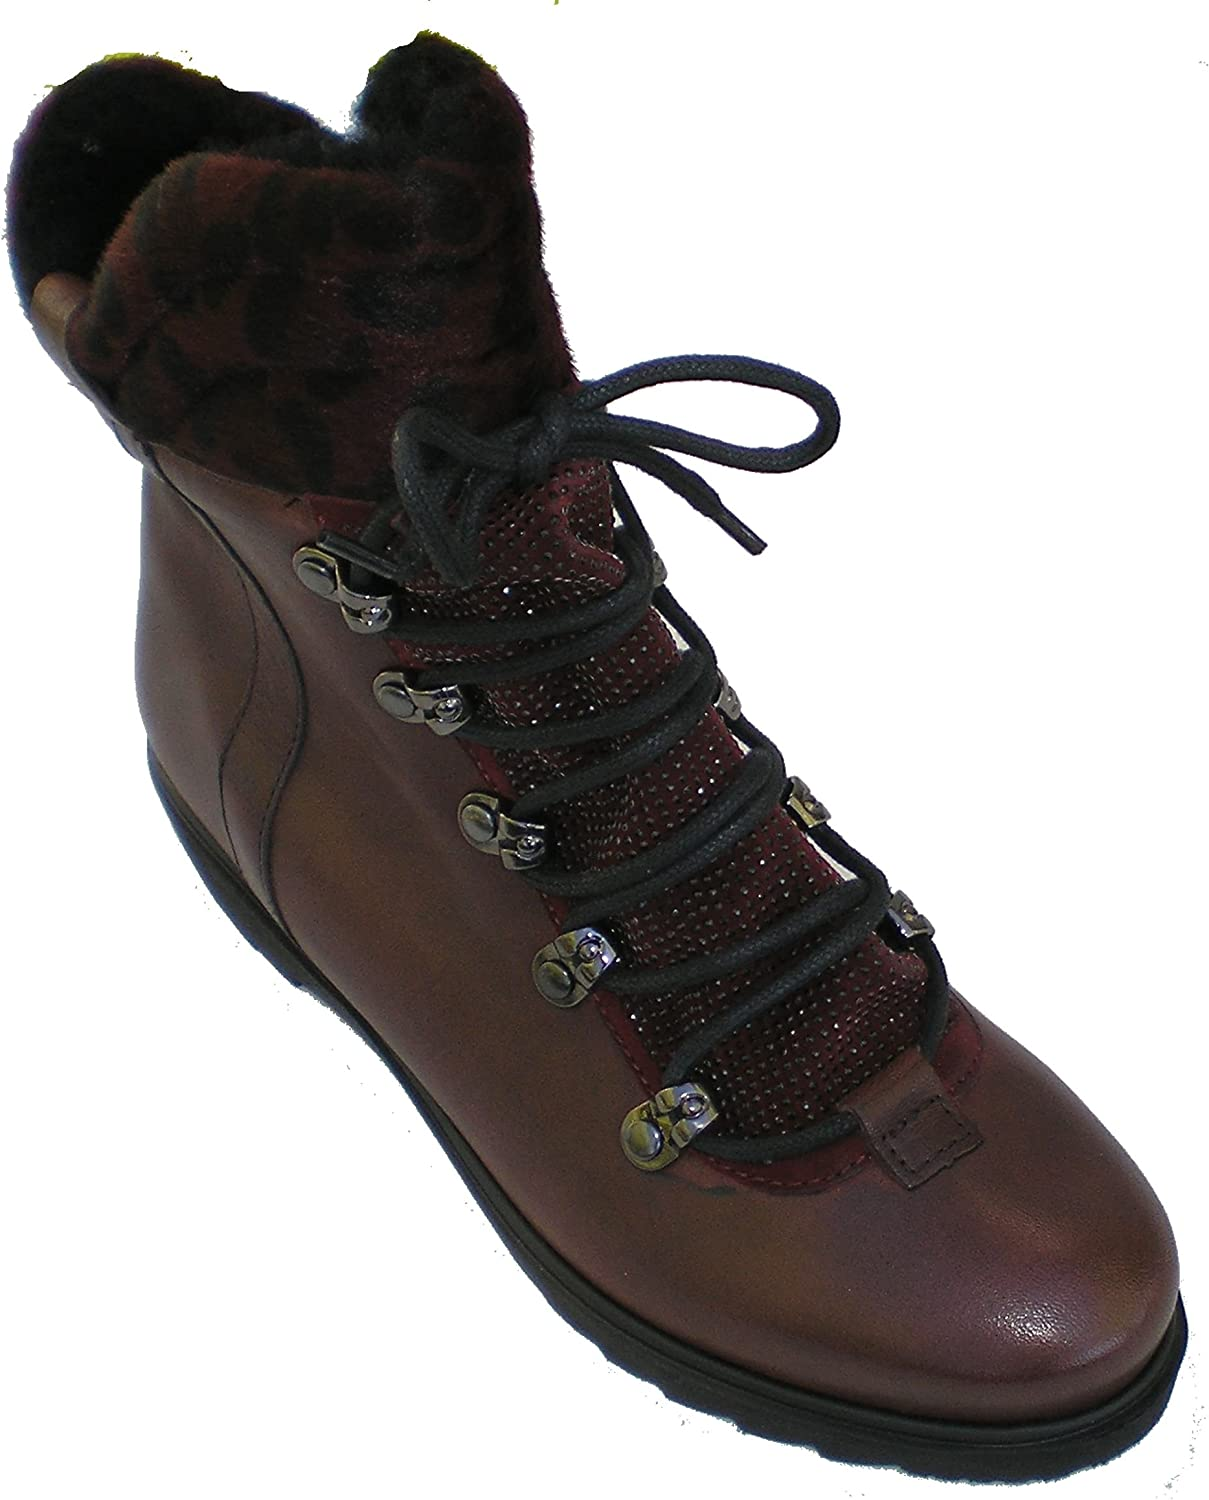 ARA Women' s Leather Boots